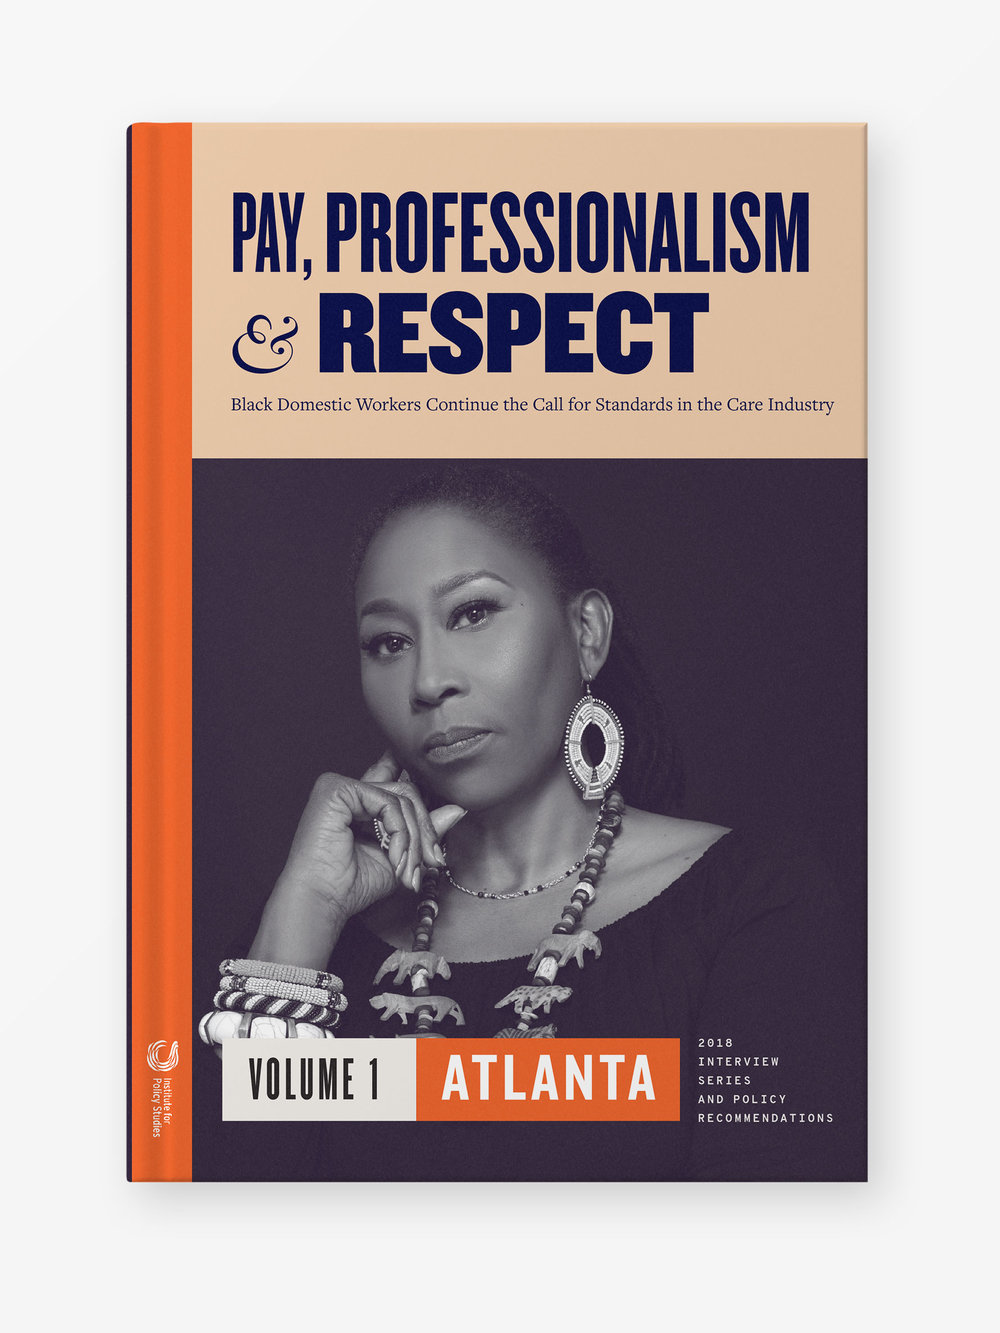 Pay, Professionalism & Respect, Volume 1: Atlanta